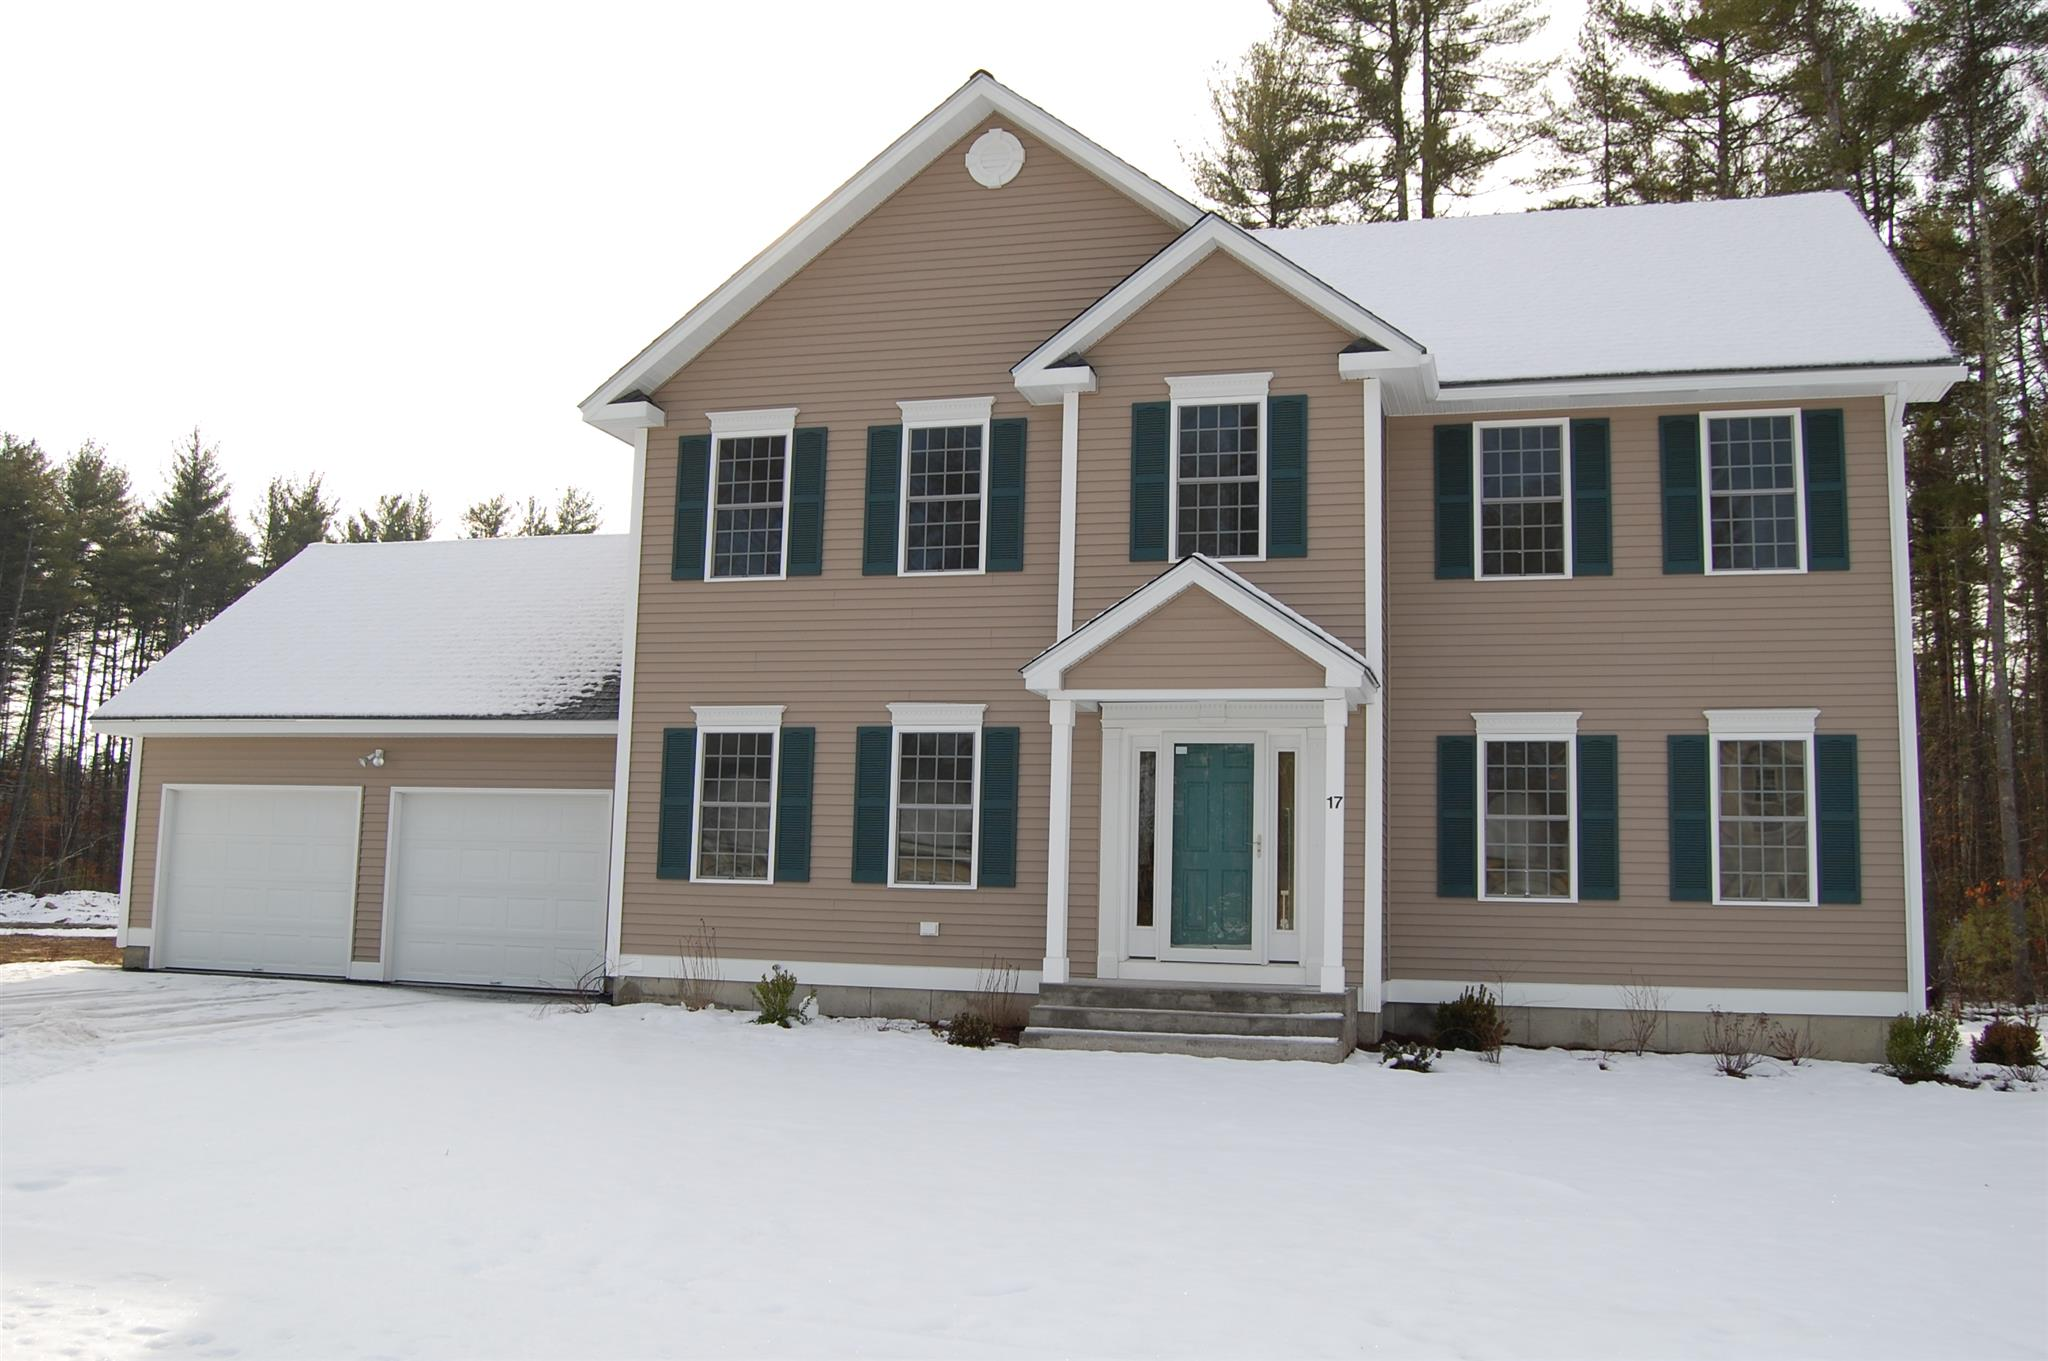 MLS 4799118: 17 Orchard Drive-Unit 21, Merrimack NH